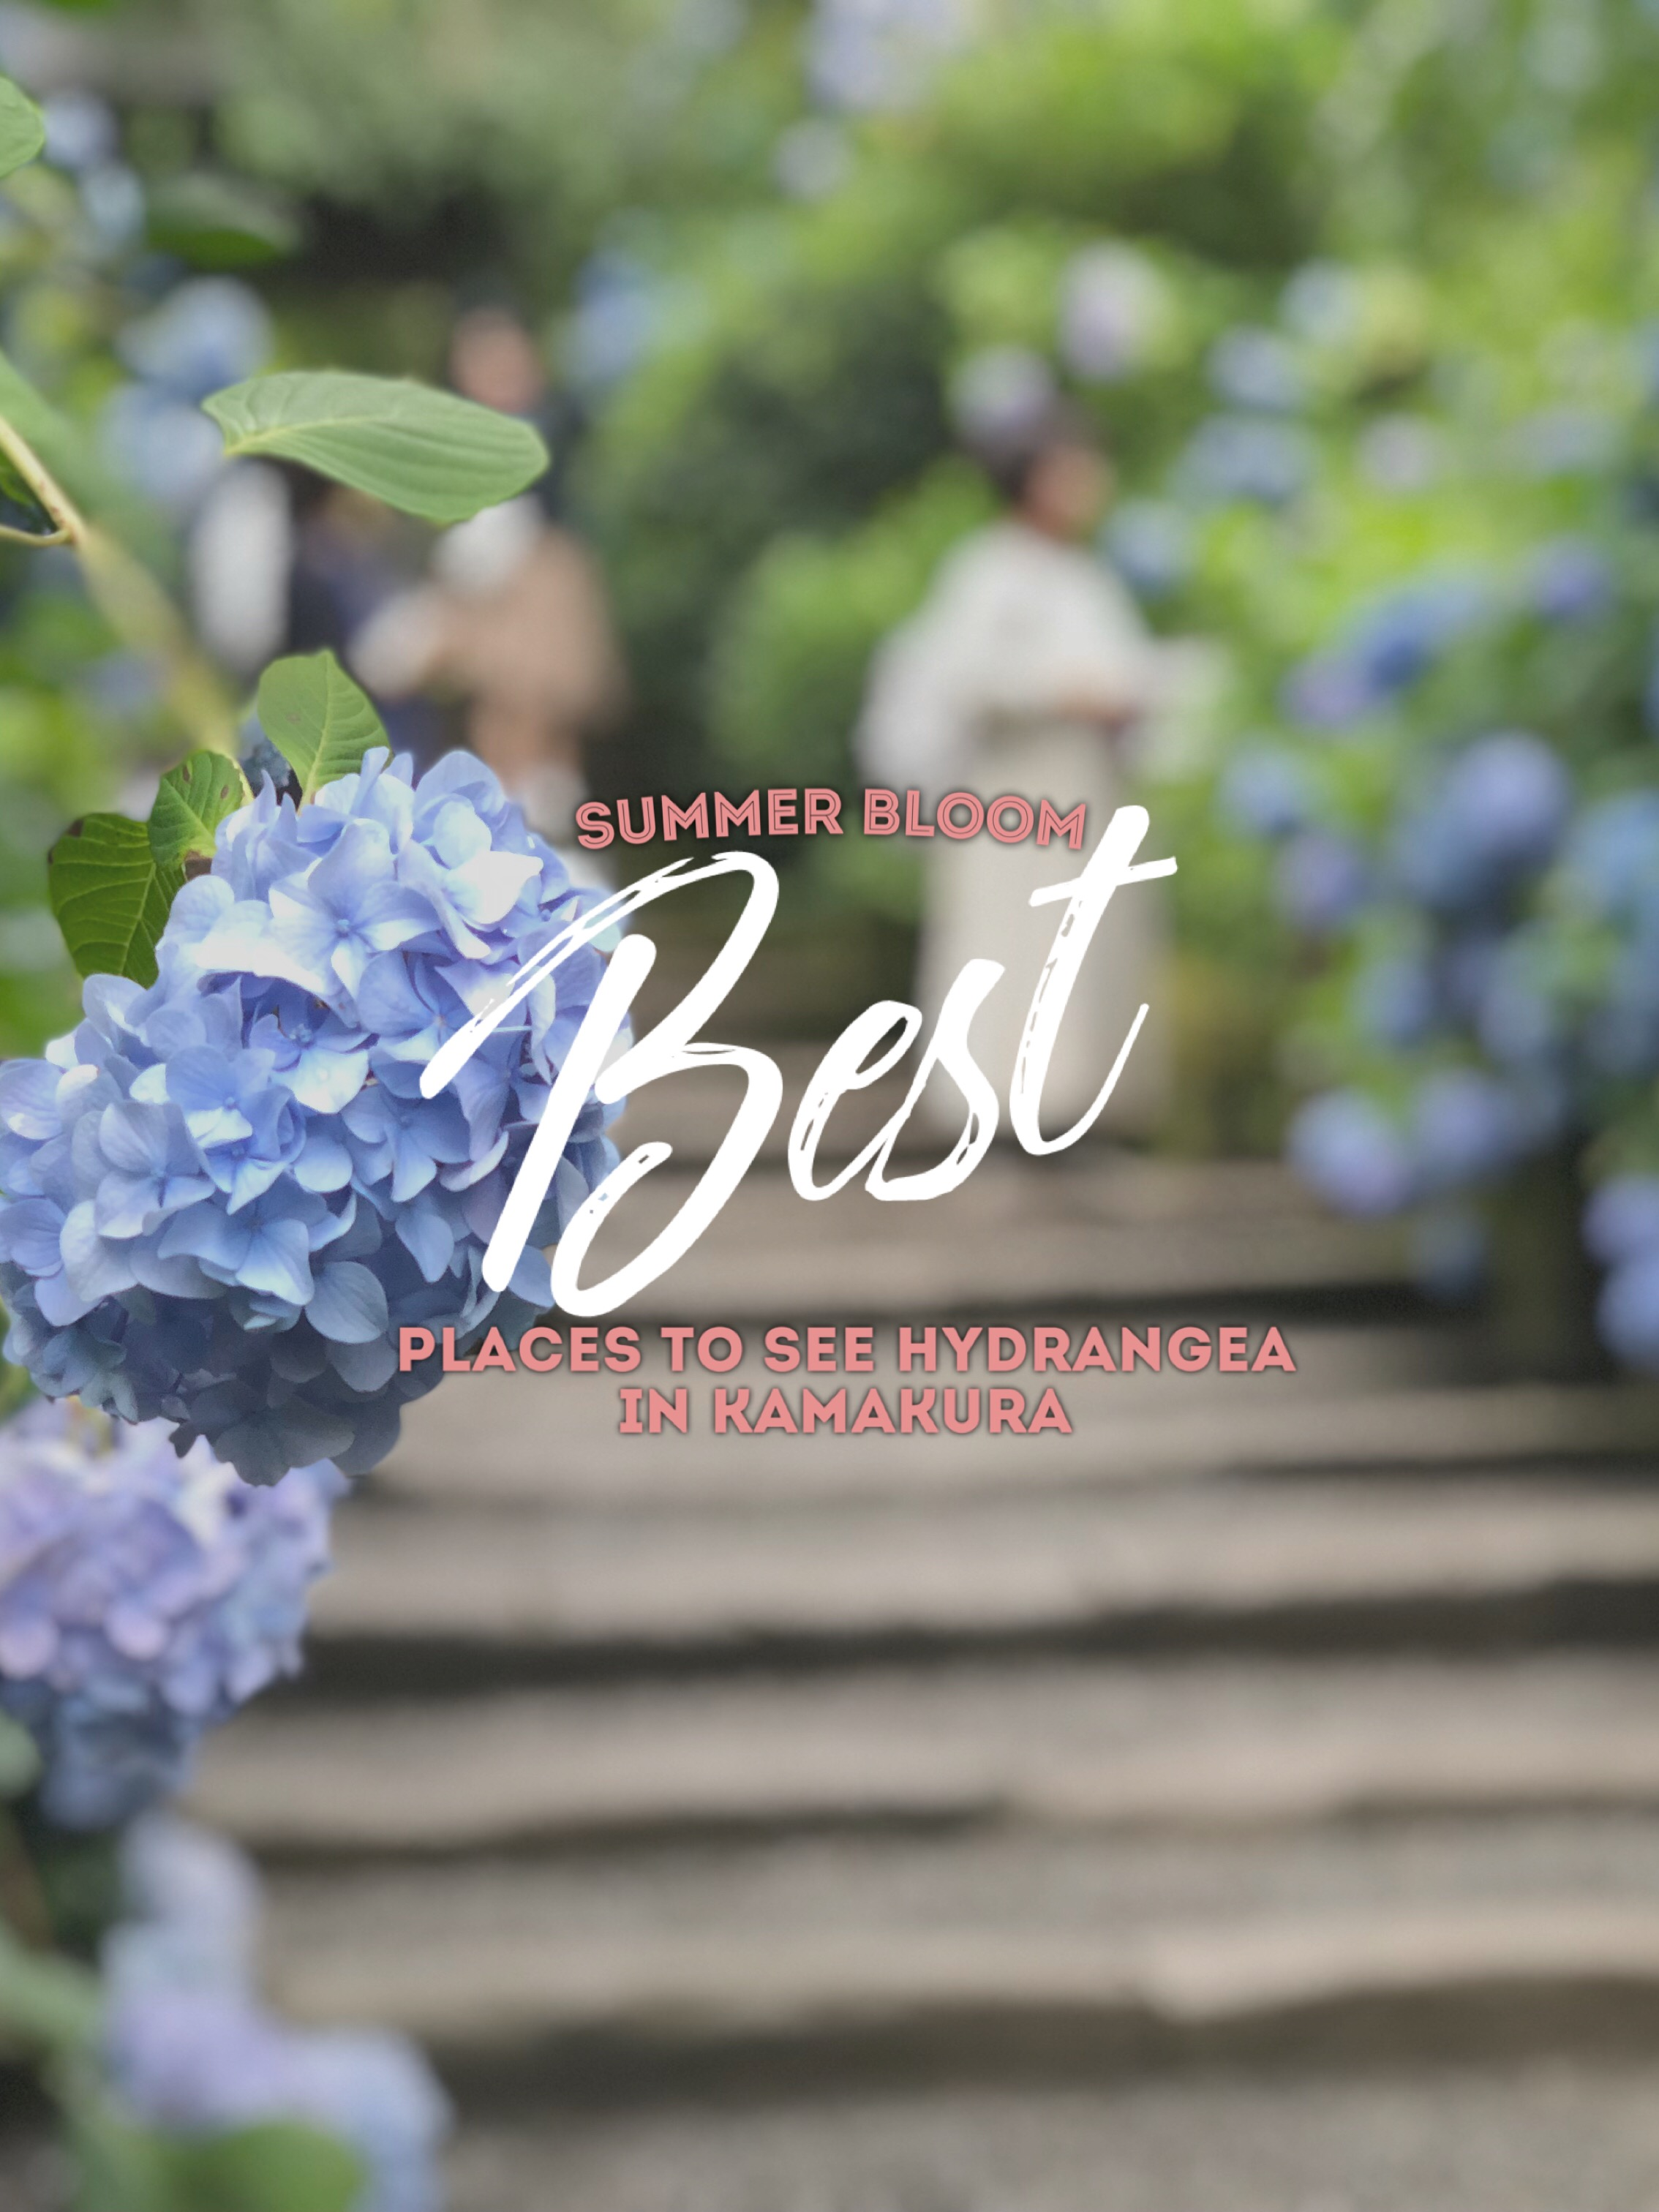 How to Plan Your Day Trip to See Hydrangea in Kamakura